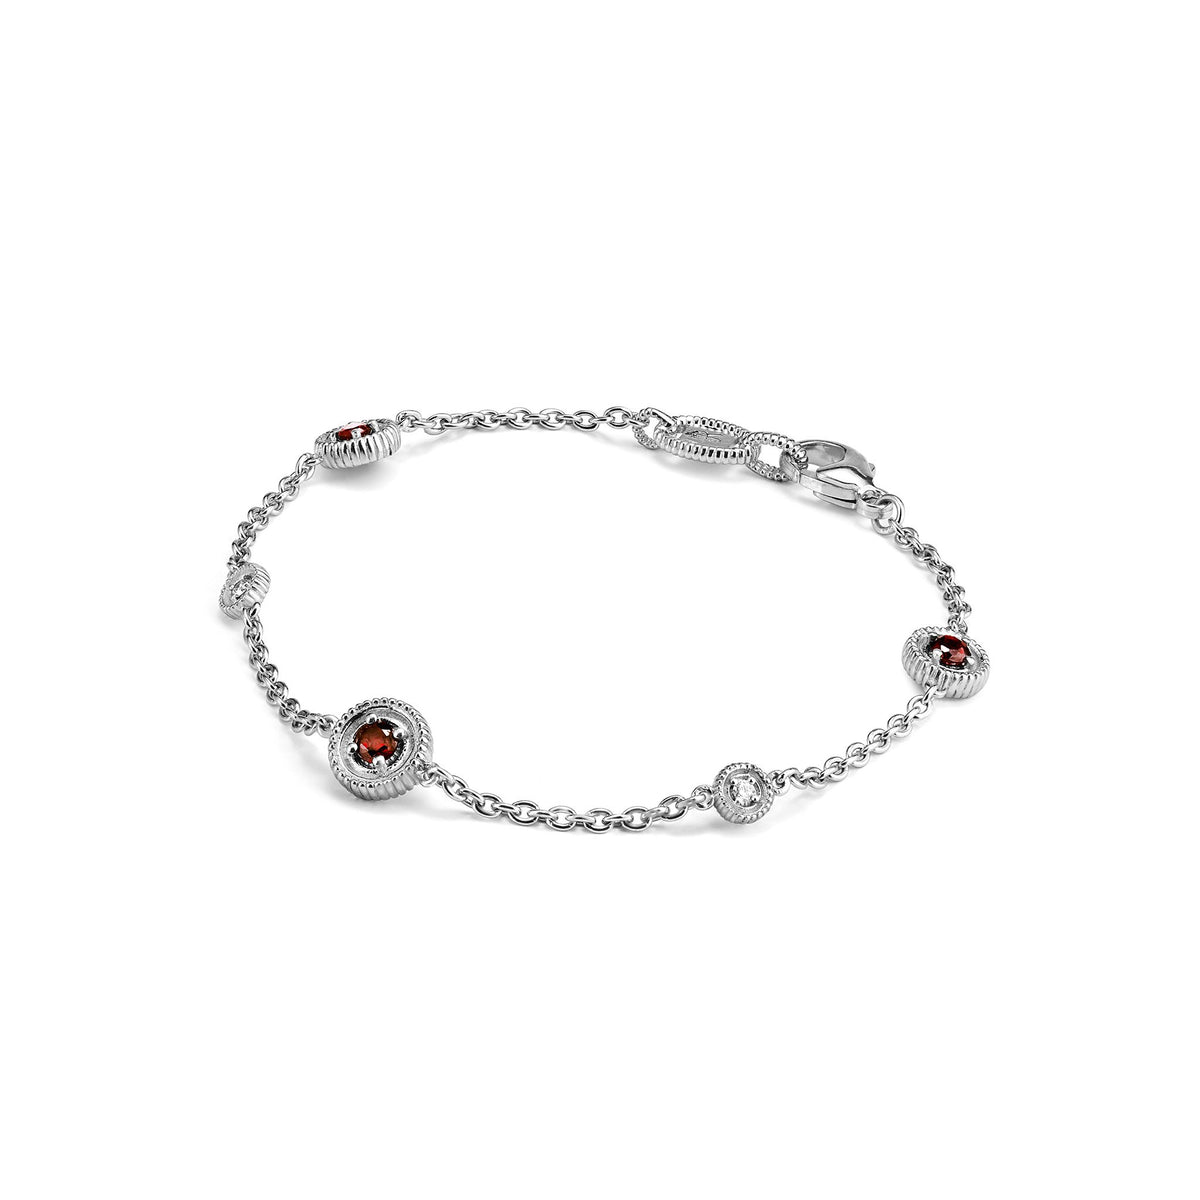 Max Bracelet with Garnet and Diamonds